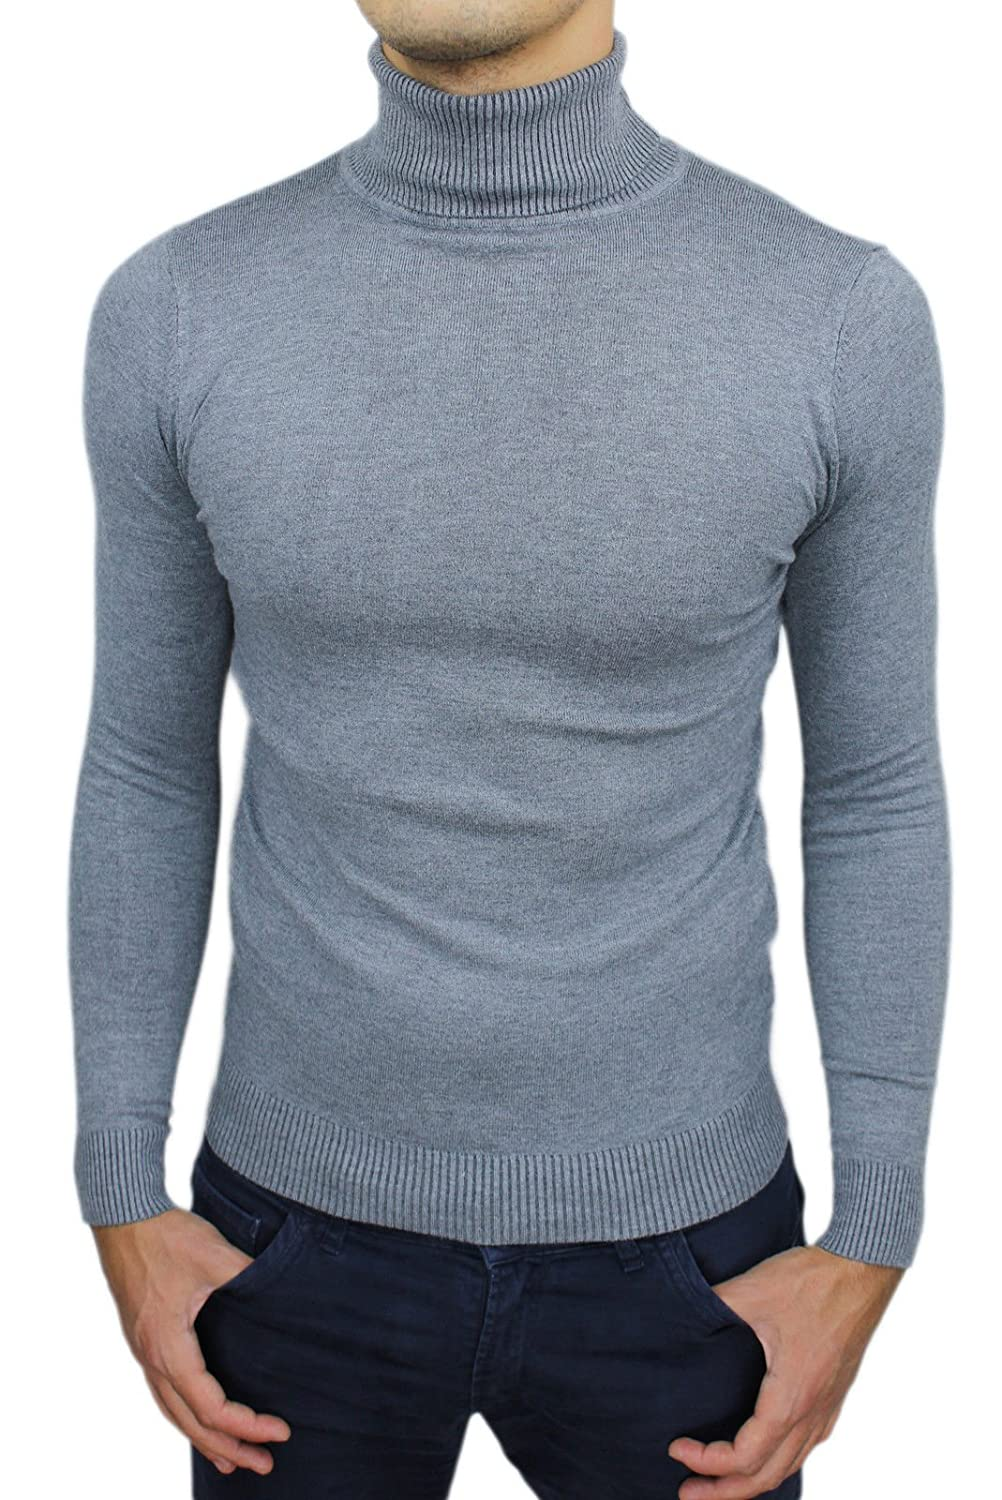 AK collezioni Men's Jumper grey bright grey (ral 7035) Large